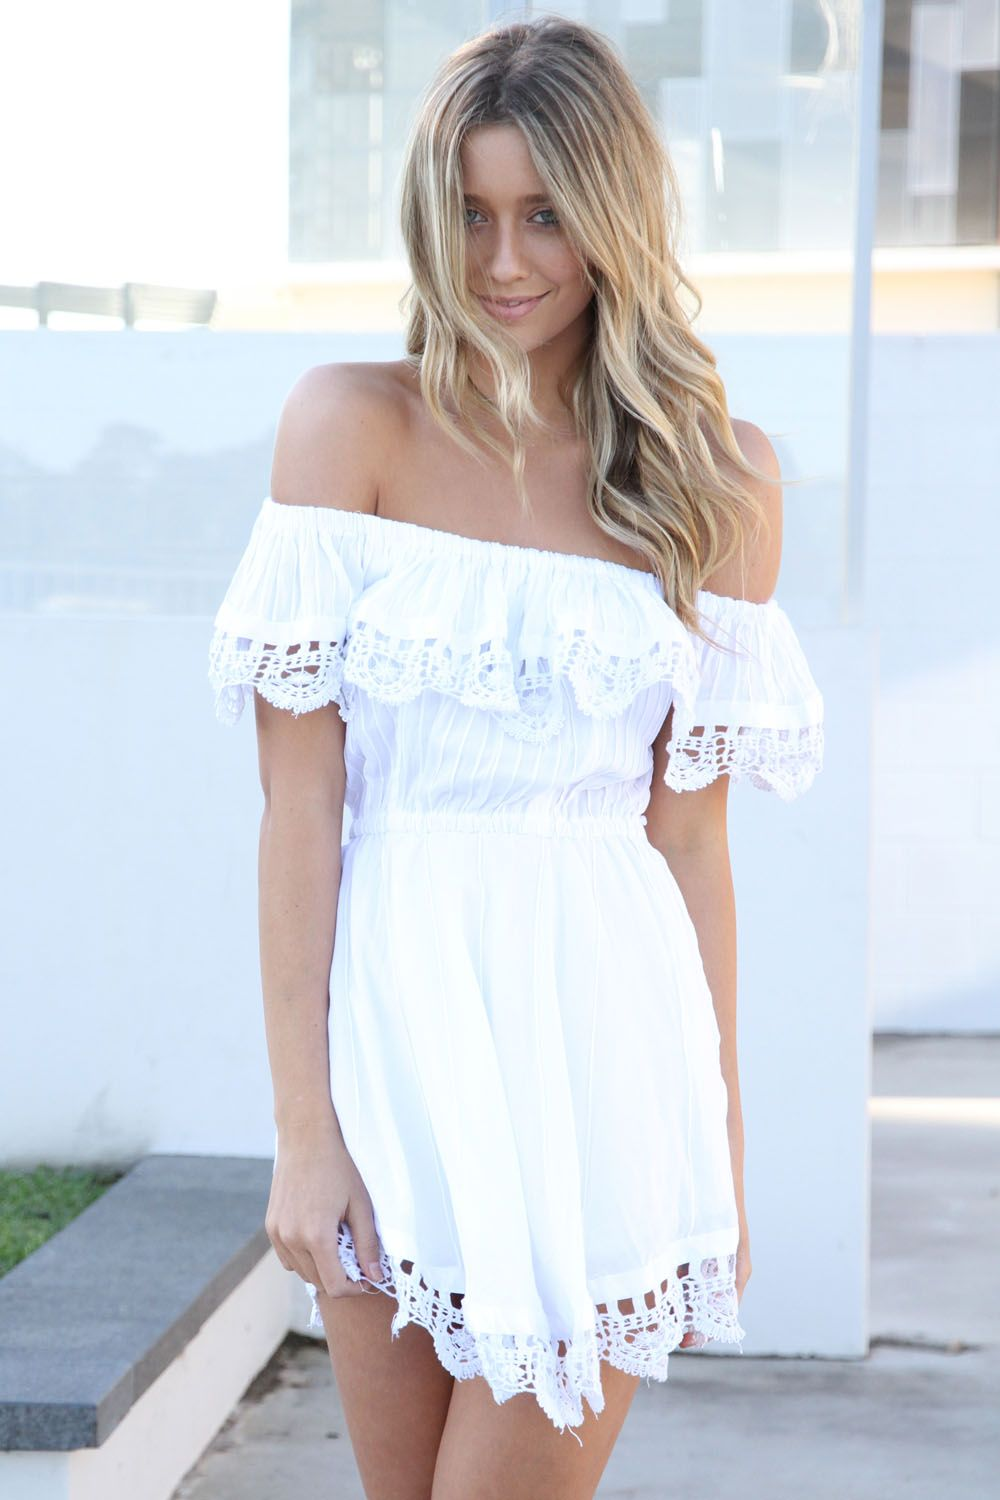 cute, white, boho dress!!! This is a fun alternative to a strapless dress, since there are technically sleeves to help keep the dress in place.